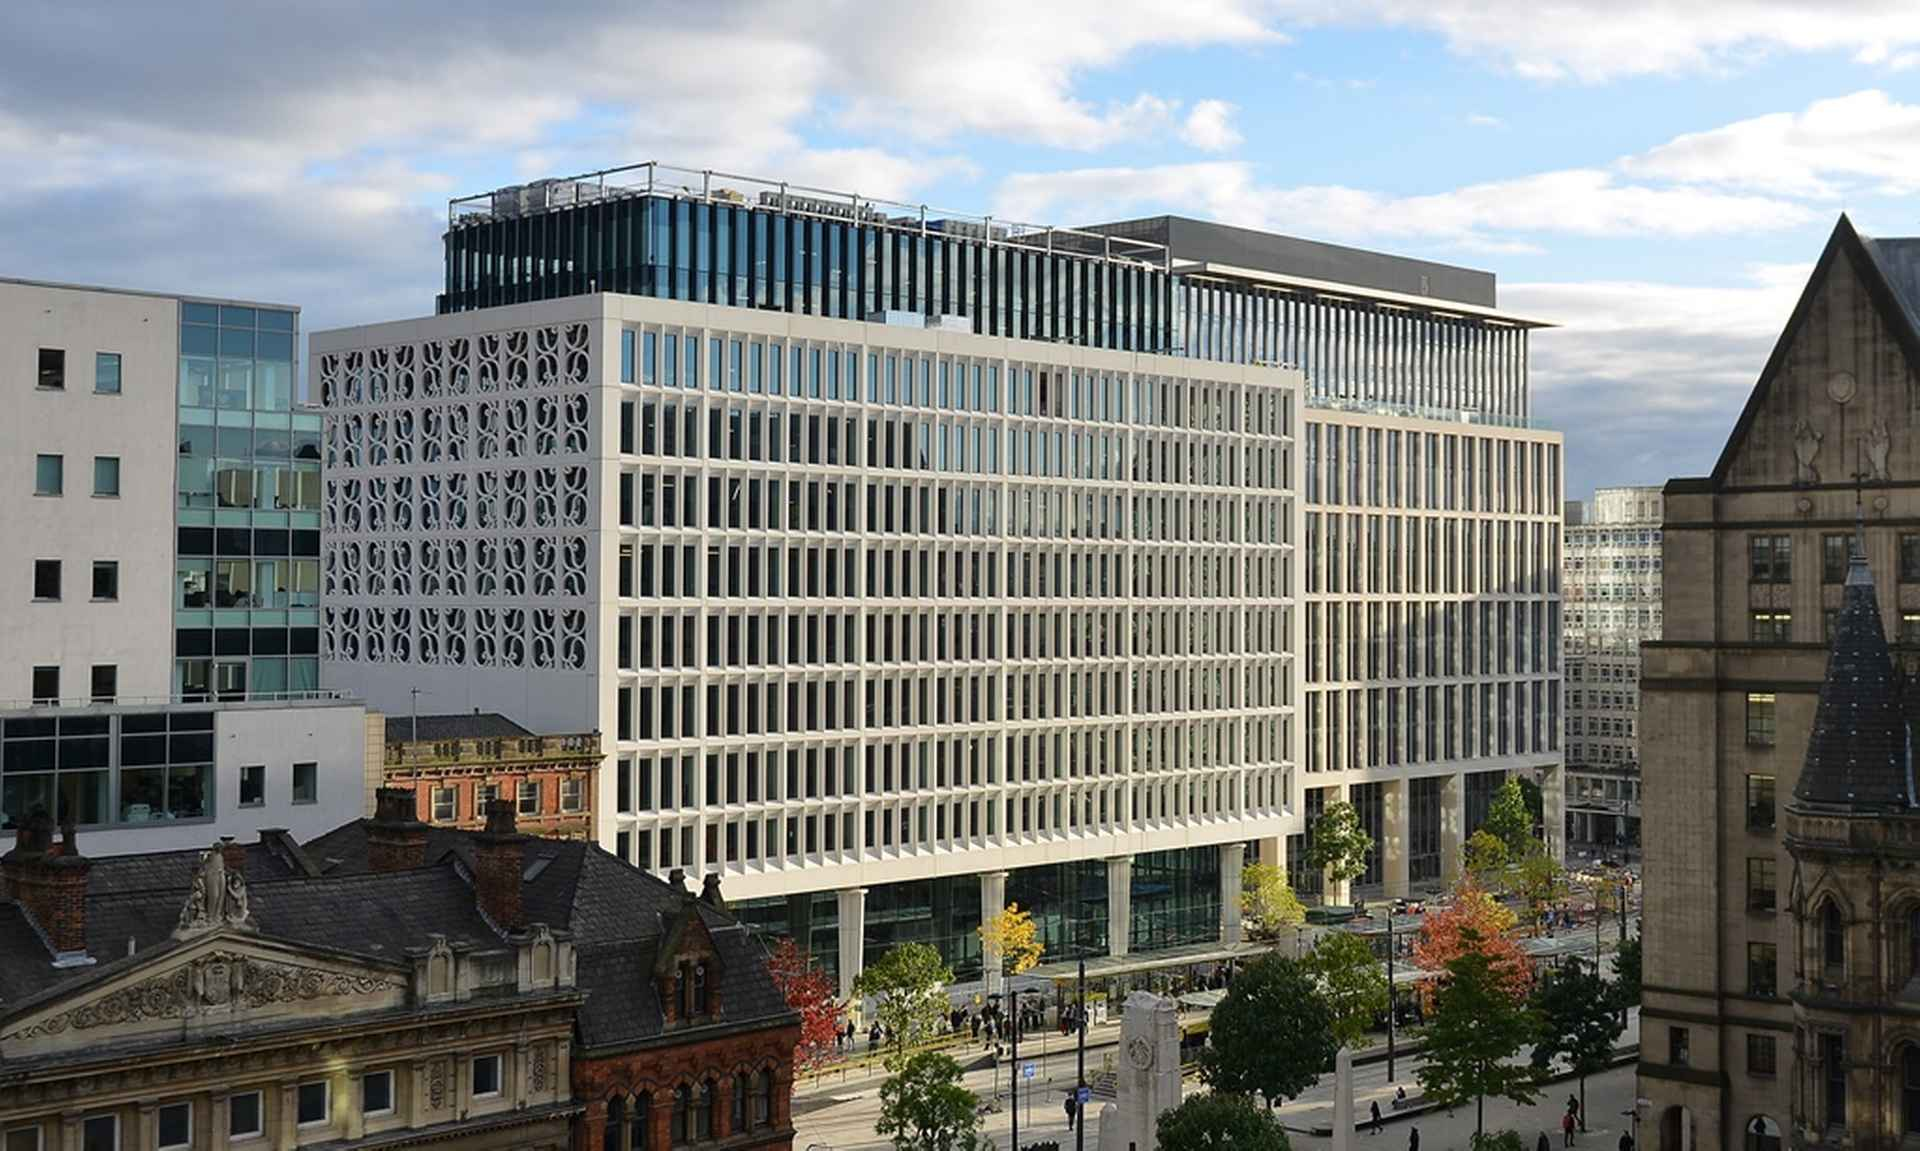 EY Office - Two St. Peter's Square, Manchester by EY (Ernst & Young)